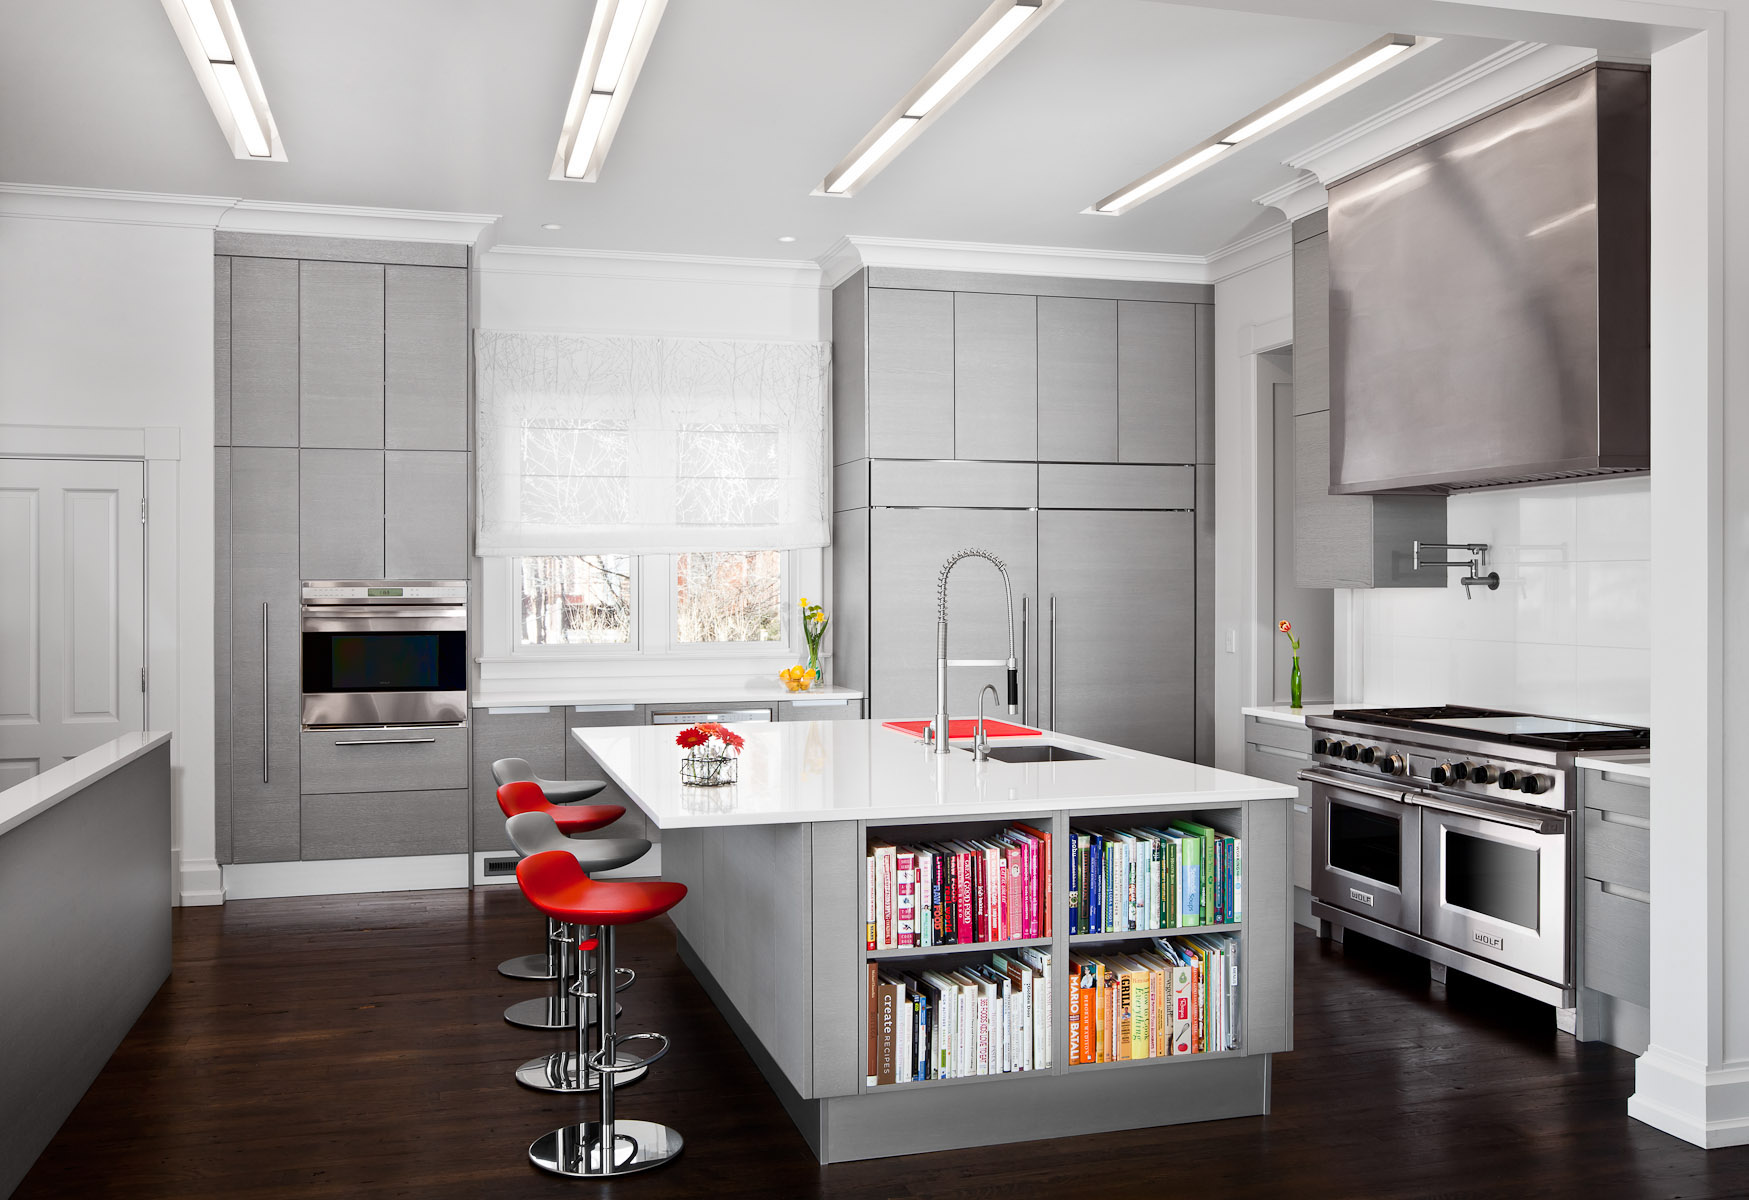 Clean modern euro style kitchen in a residential renovation by Kristin Lewis Architects